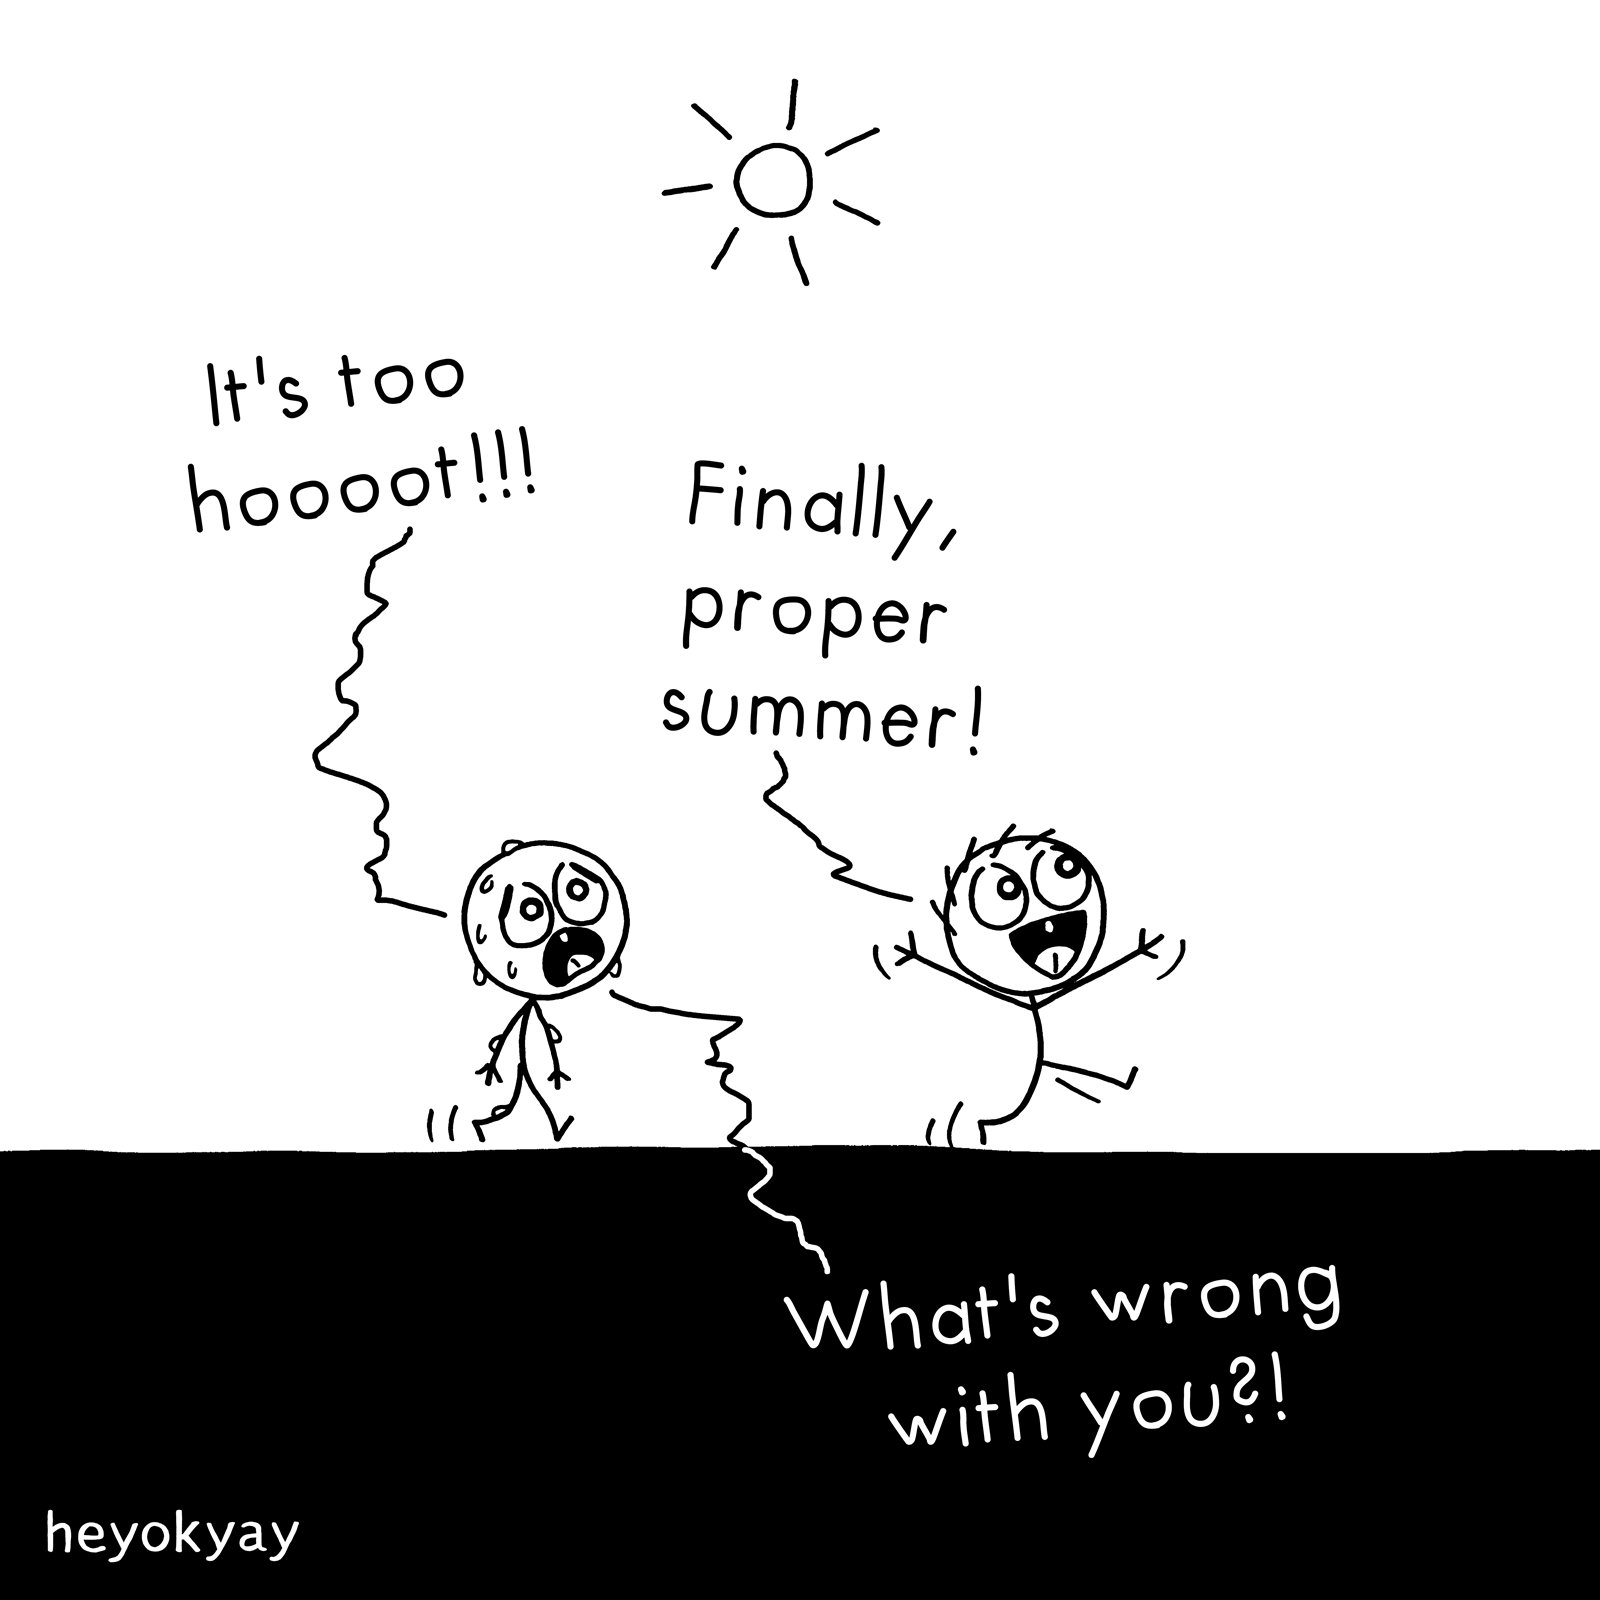 Summer heyokyay comic